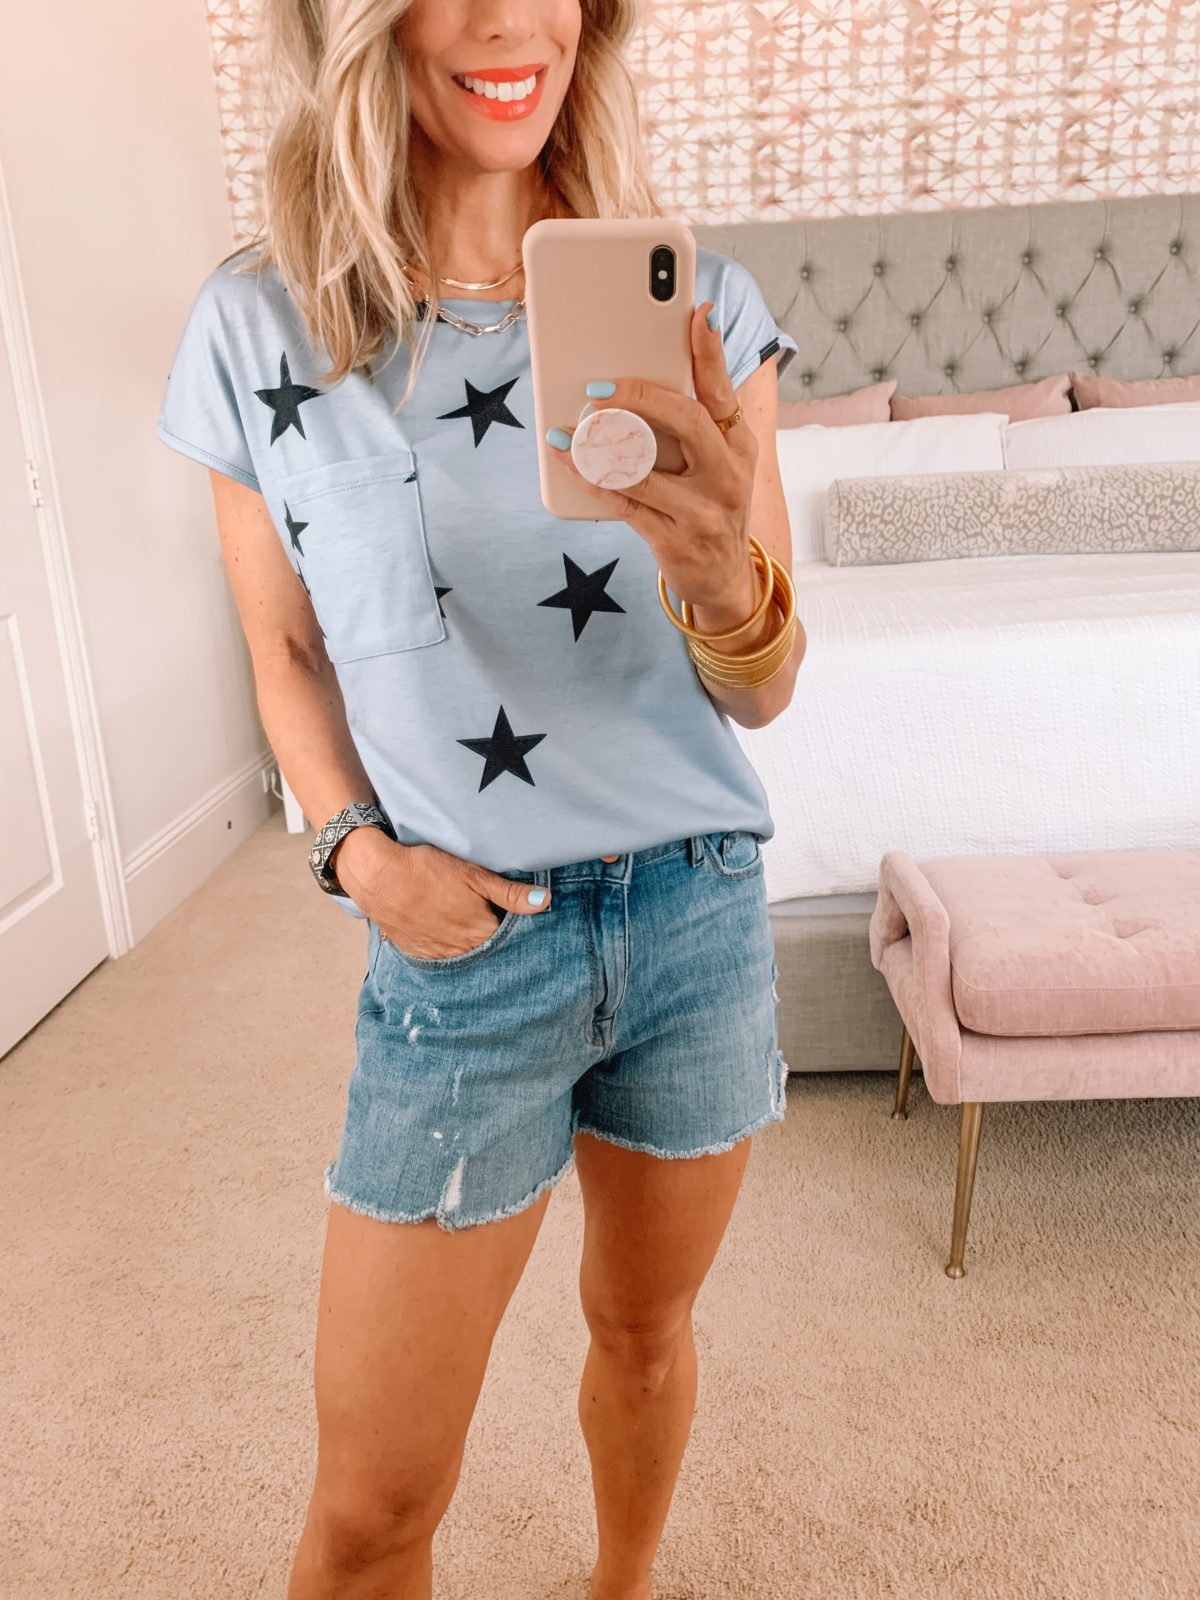 Amazon Fashion Faves, Star Tee and Denim Shorts with Kell Parker Sandals